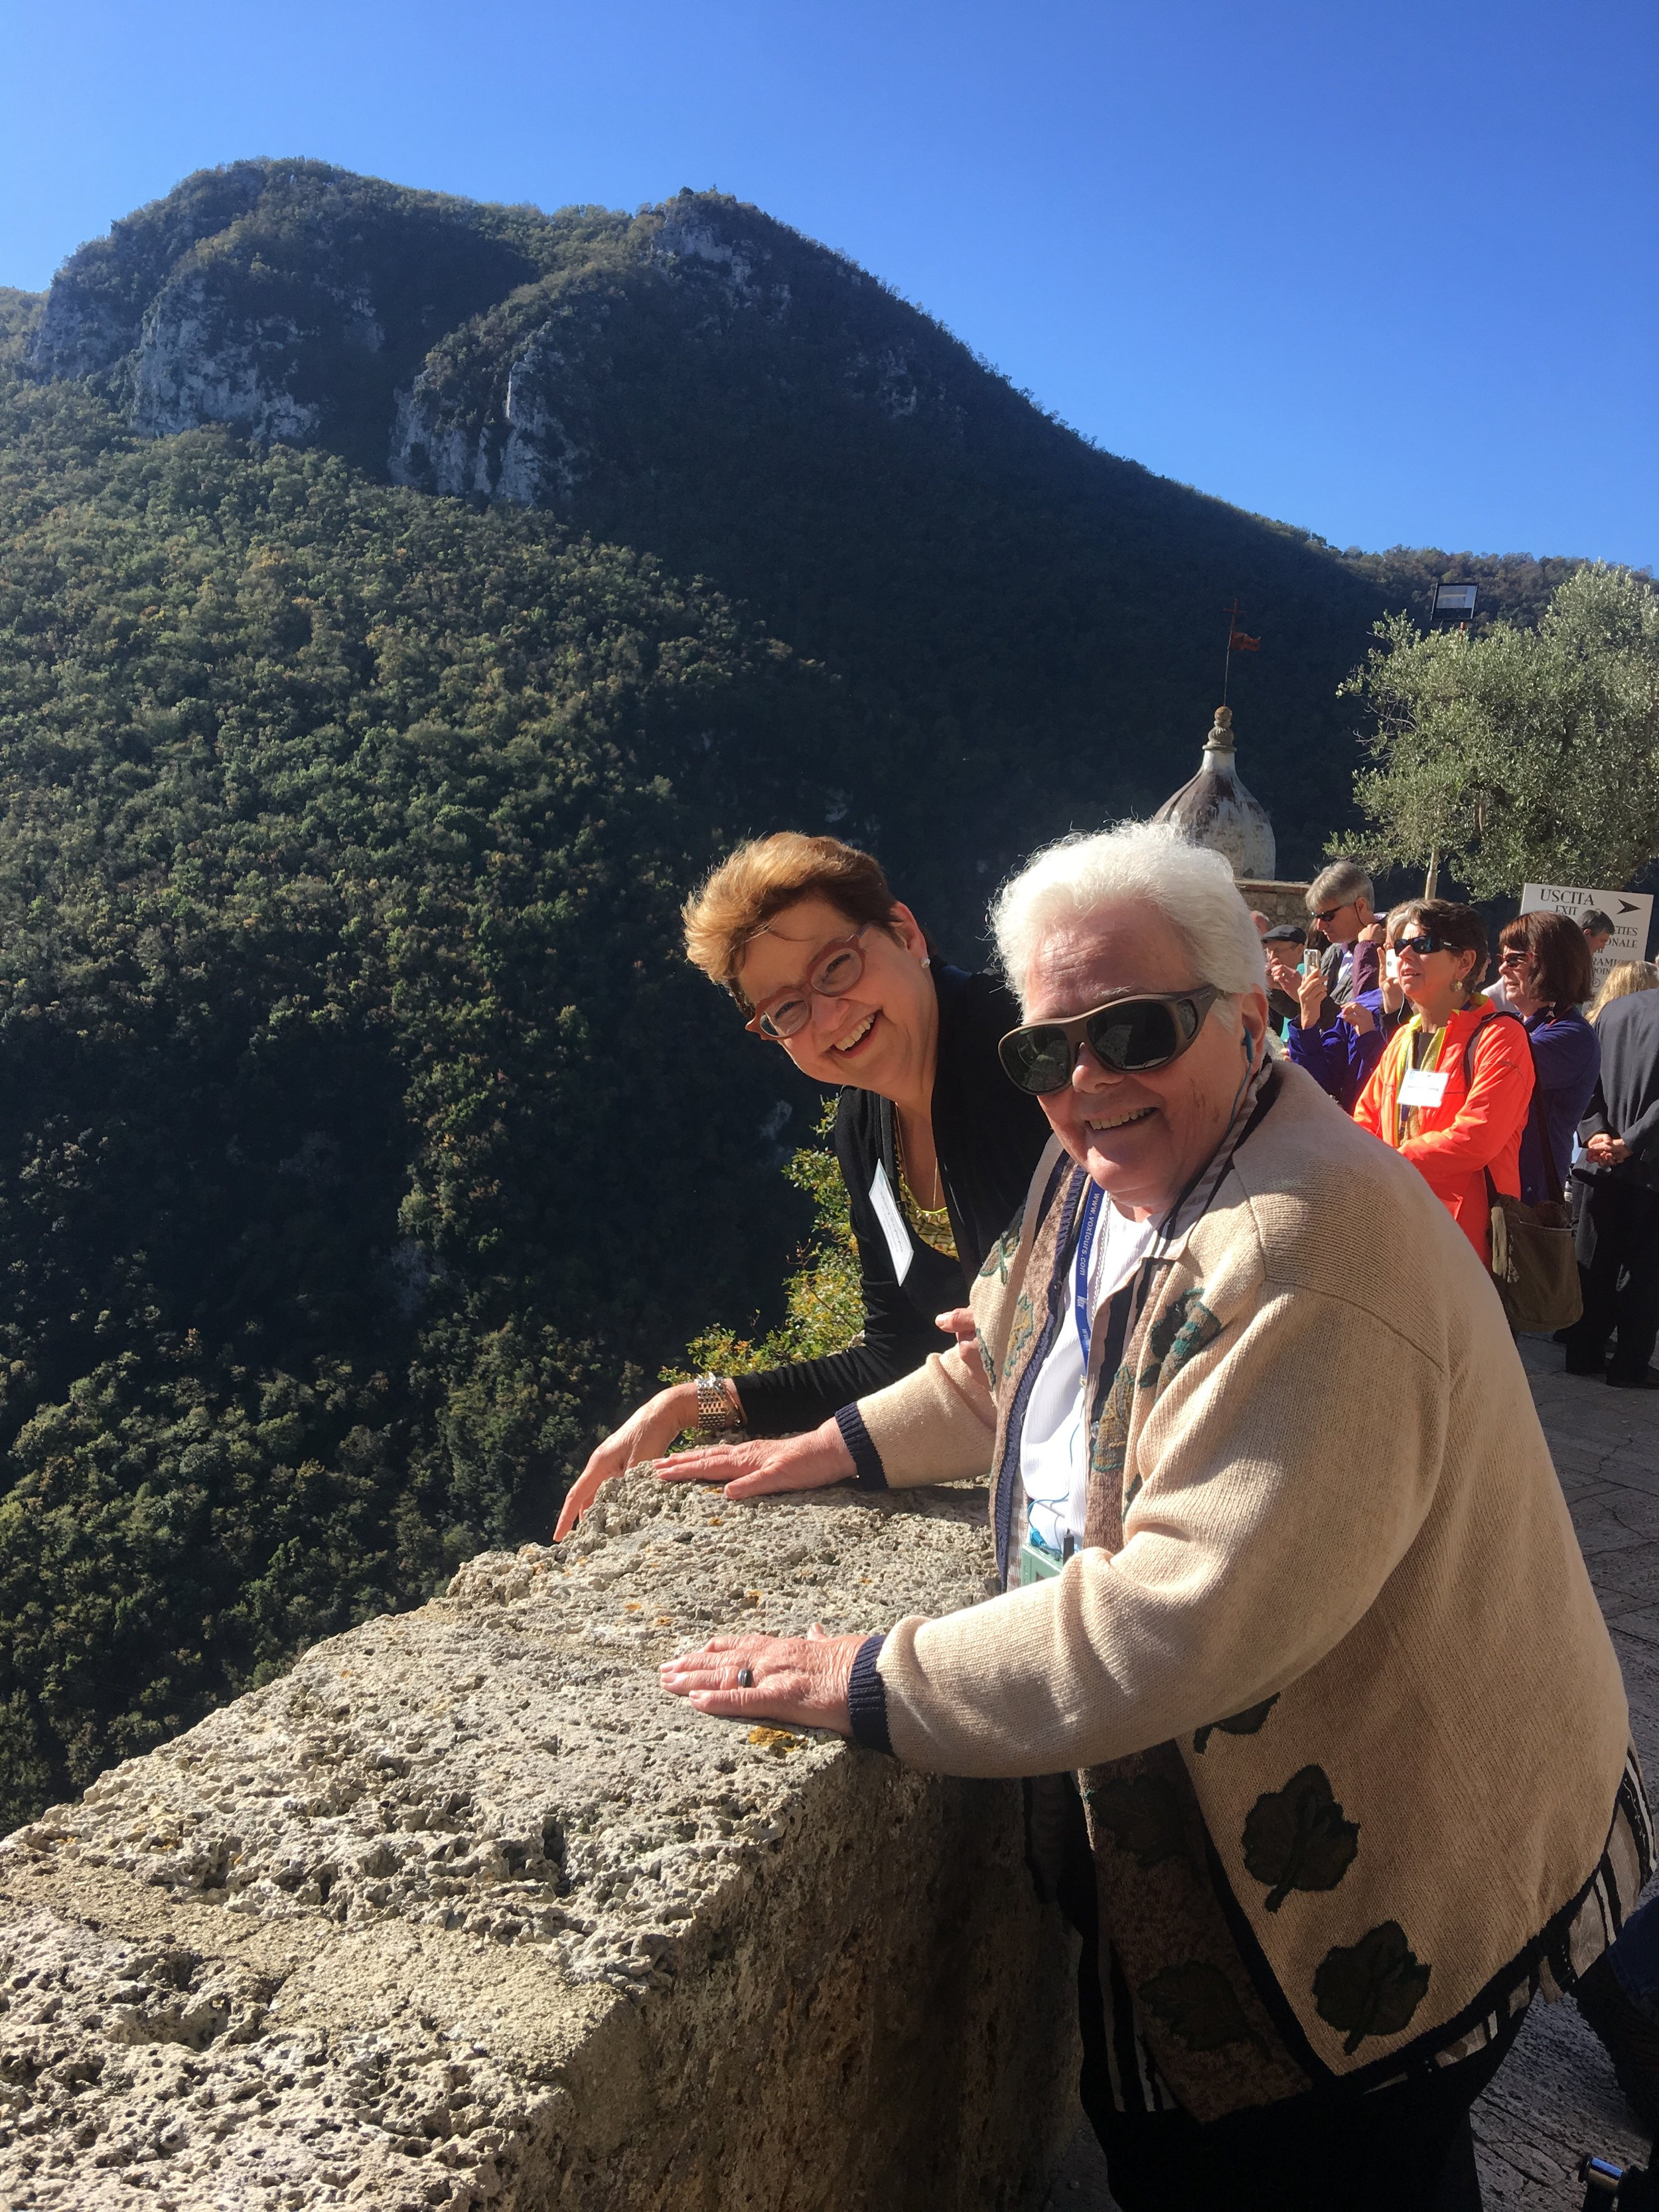 Mary Prybylo, MSN, President and CEO of St. Joseph Hospital, and Sr. June Ketterer, SGM, enjoy the view from the Abbey of San Eutizio in Umbria. The Covenant group learned about the history of Benedictine monks who lived here and developed microsurgical techniques that were later taught to lay medical professionals.